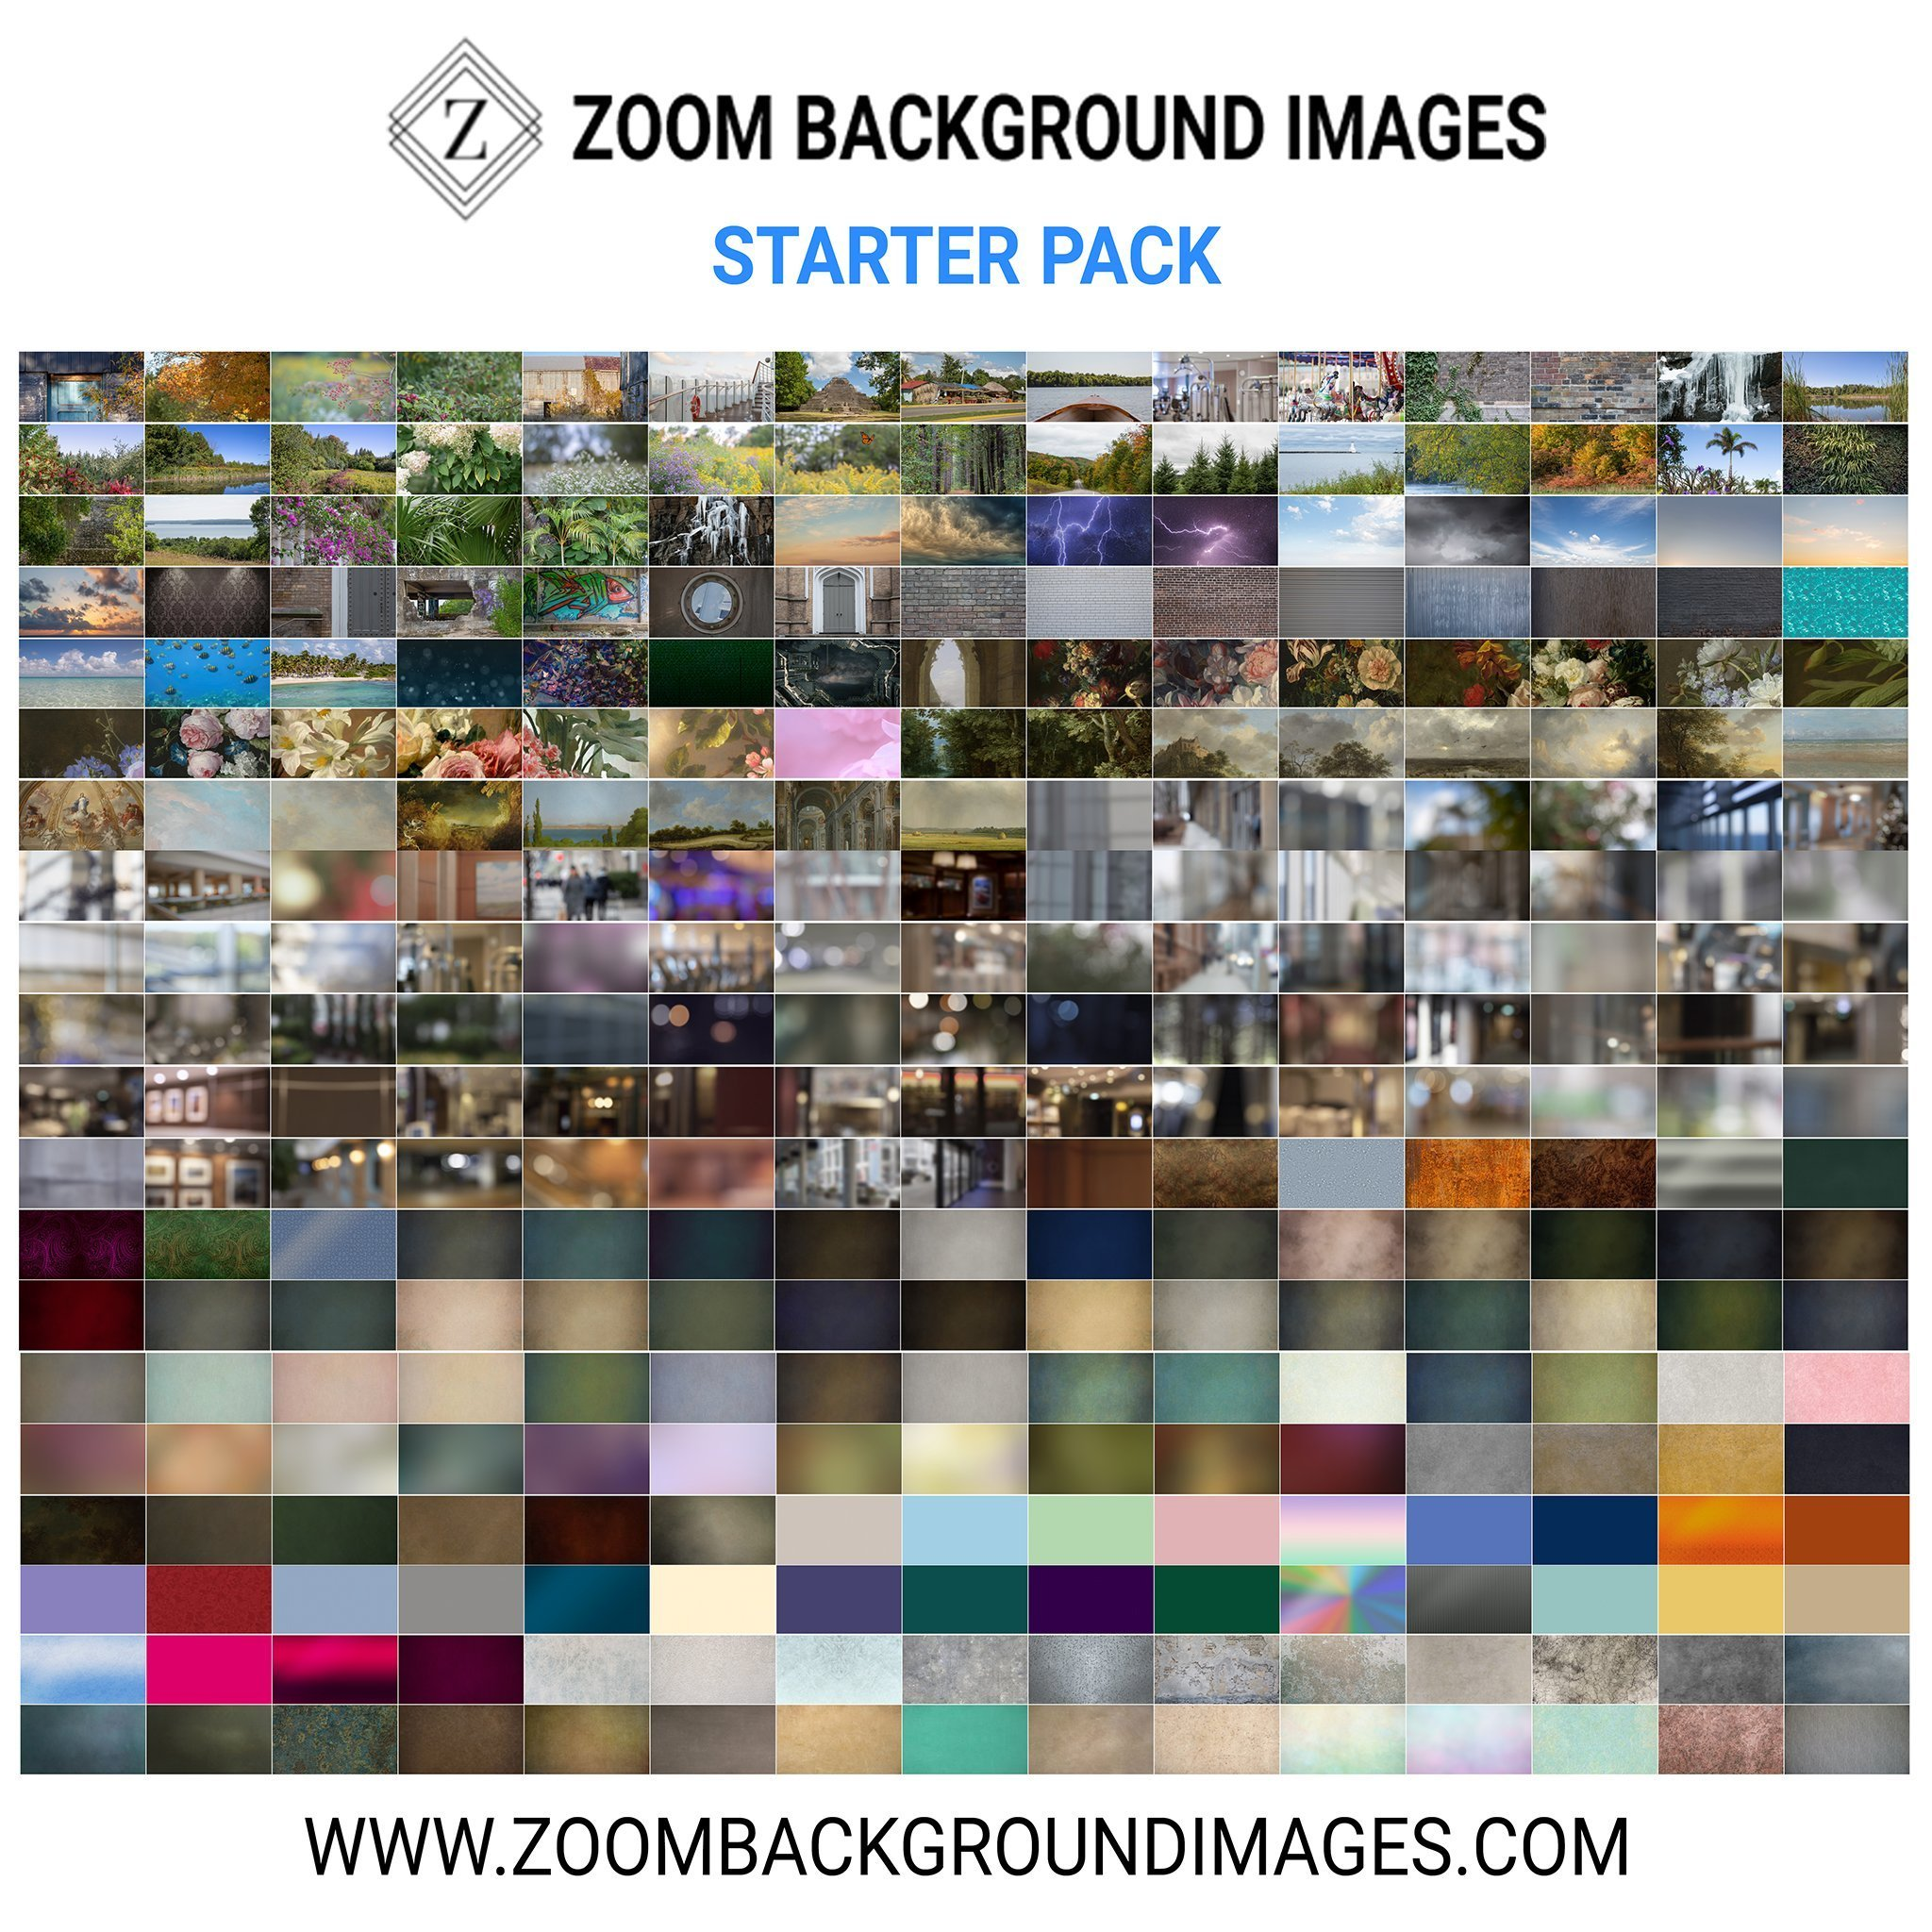 300 of the best zoom virtual backgrounds available on the internet